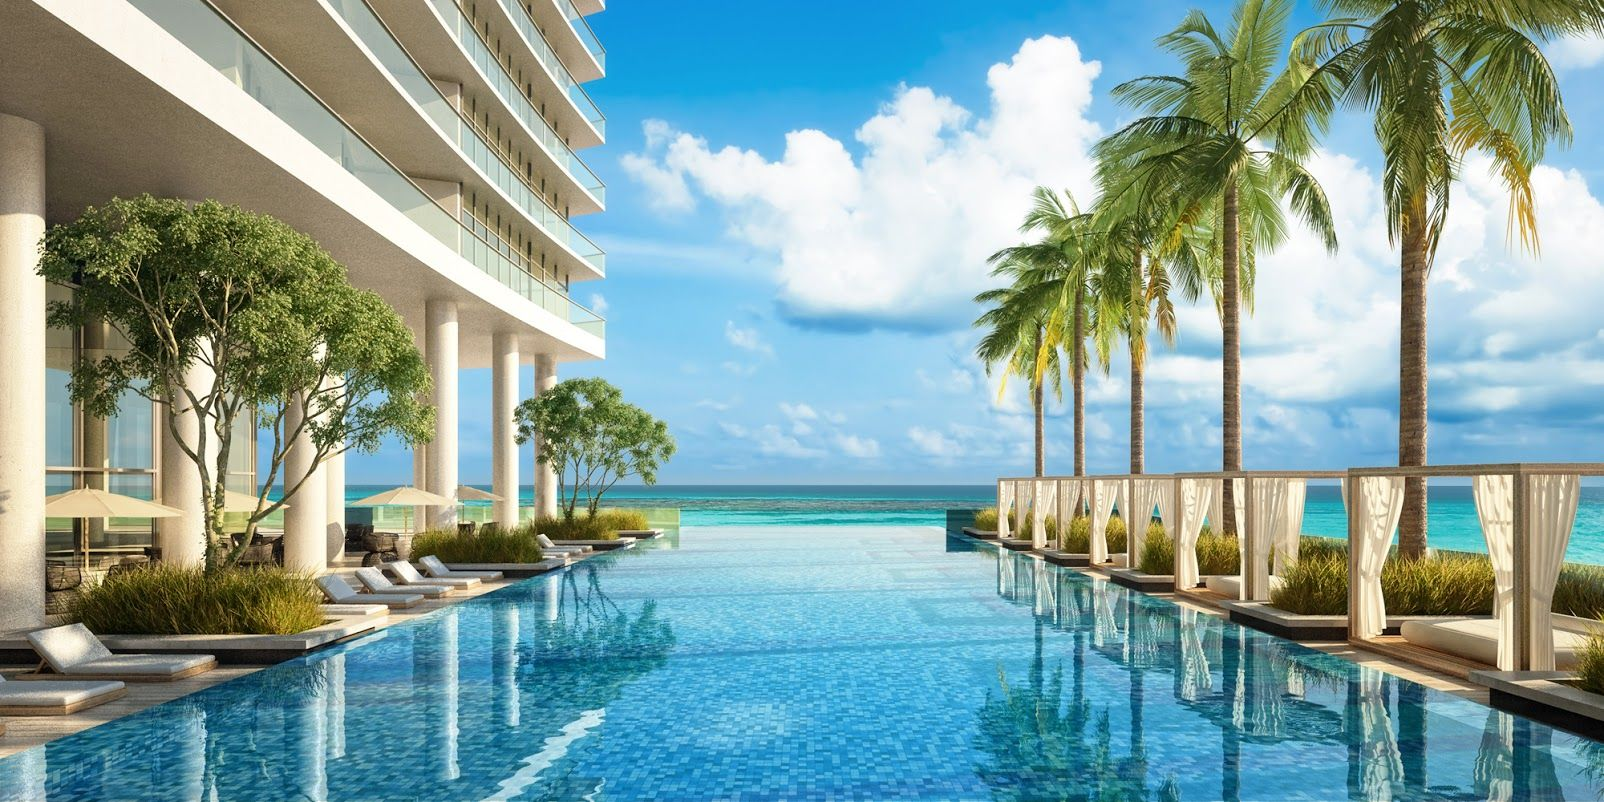 Miami S Ultimate Guide For Luxury Real Estate For Rent 2bed 2 Bath Furnished Penthouse In Courvoisier Cou Hyde Beach Luxury Real Estate Hollywood Real Estate